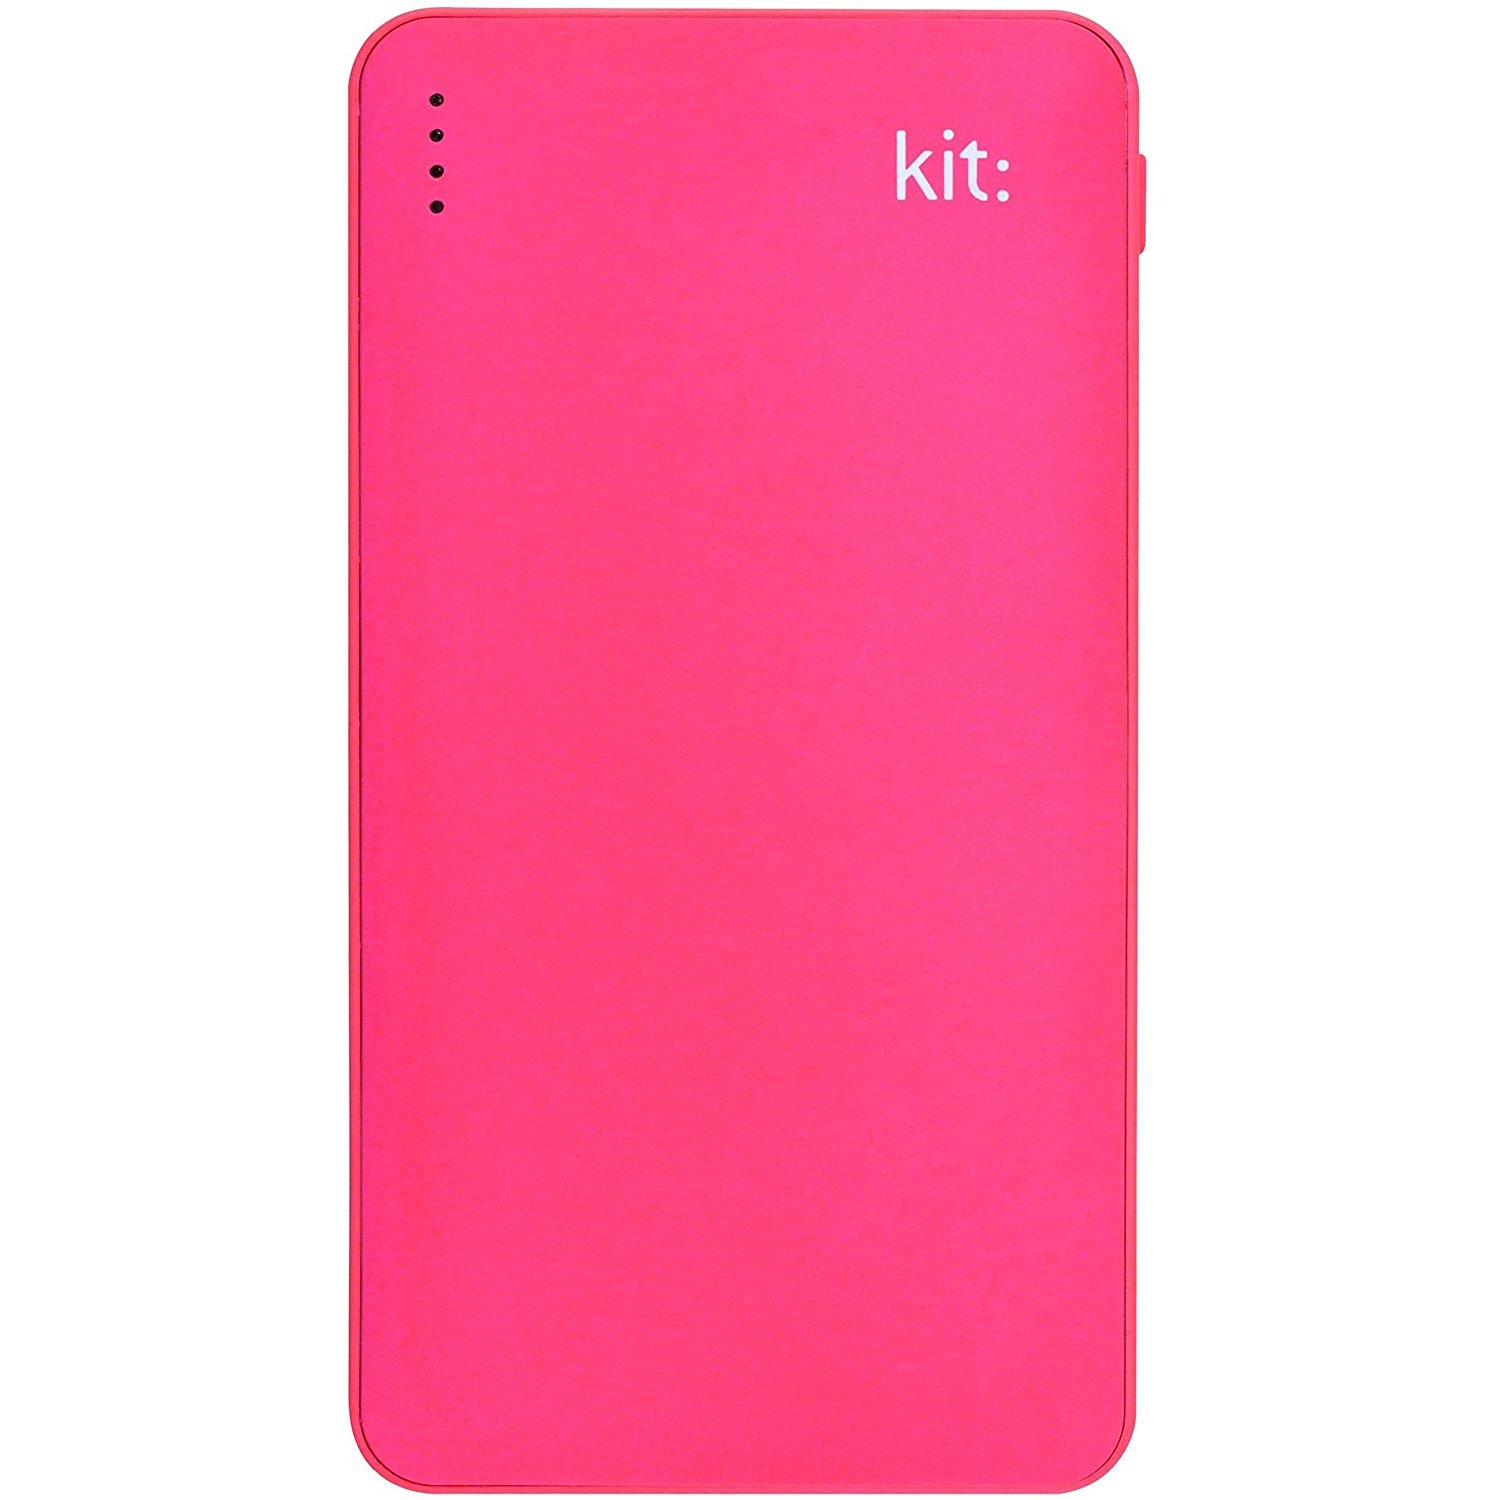 Kit Power Bank Fresh 12000 mAh rózsaszín